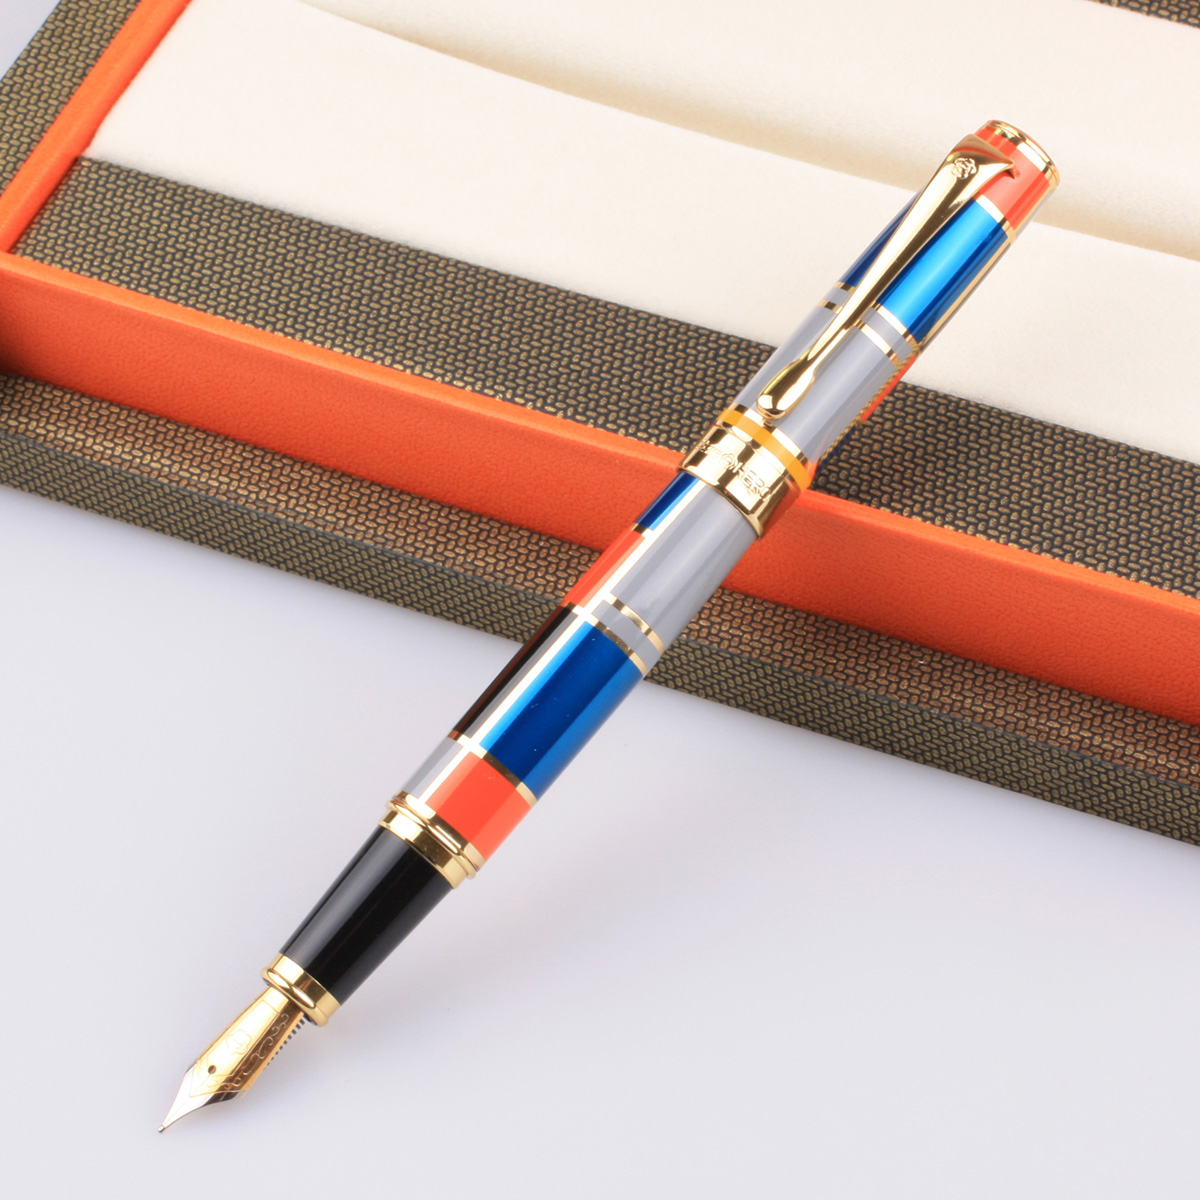 New arrival multicolour 767 senior iridium fountain pen fountain pen ink pen gift pen  FREE shipping hero 573 black silver square grid senior iridium fountain pen fountain pen classic free shipping